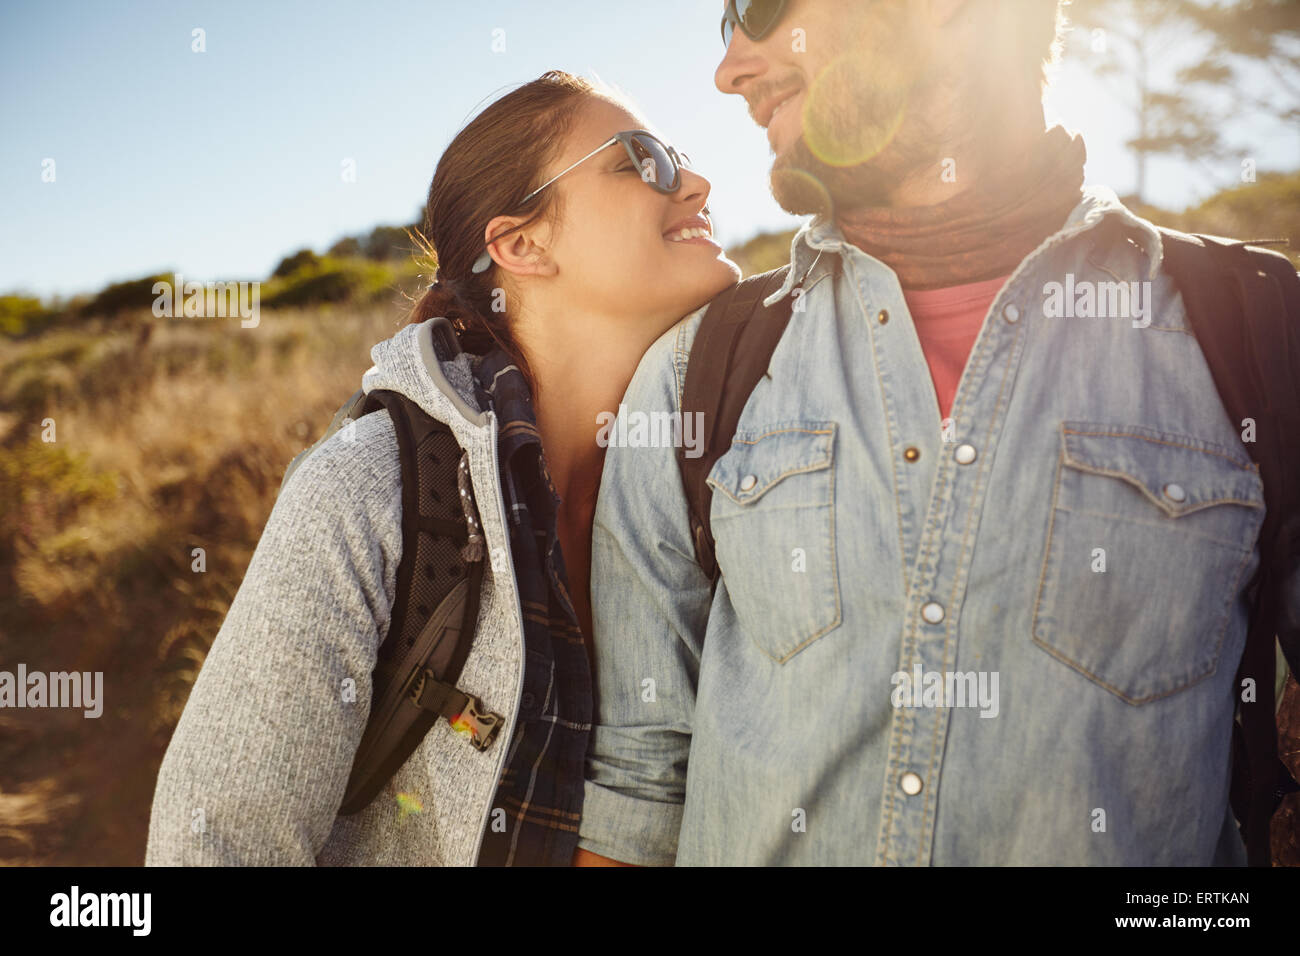 Love couple looking at each other smiling, hiking in nature. Young caucasian couple on hike on sunny day. - Stock Image